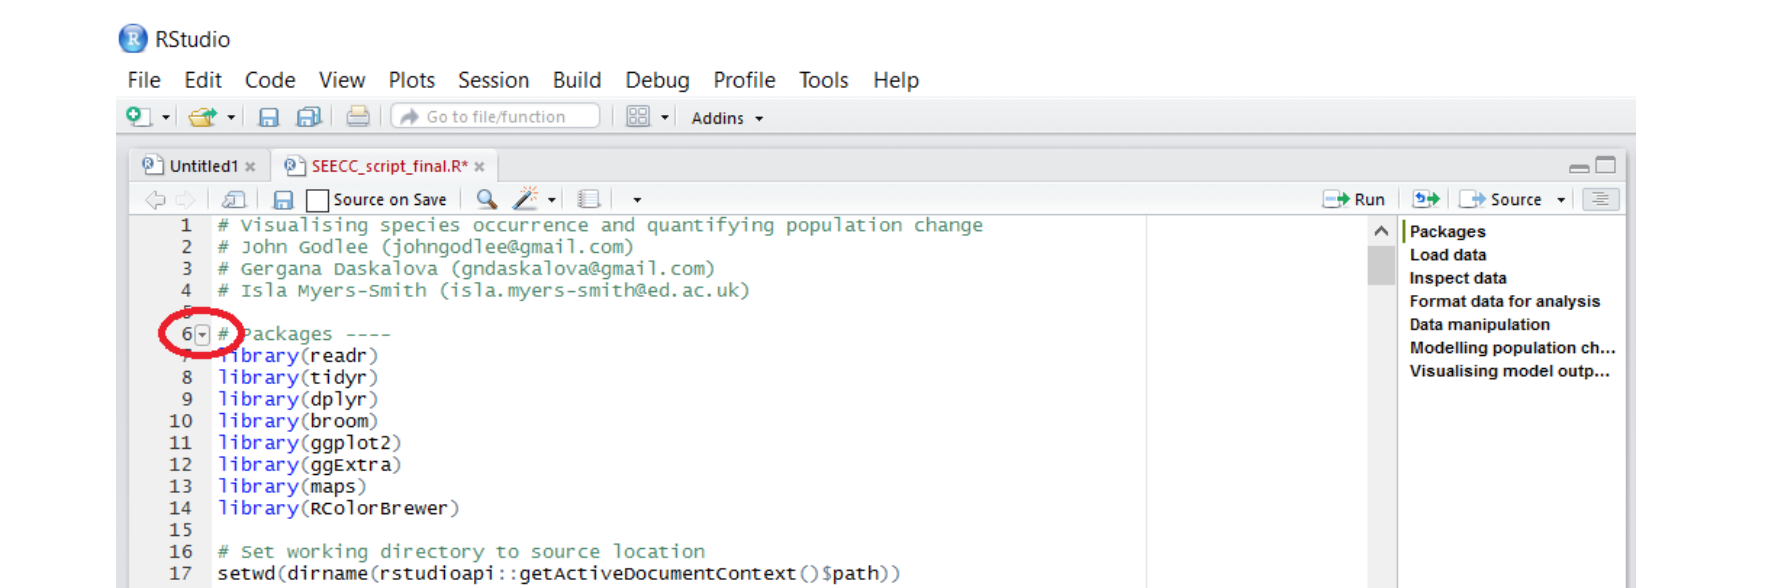 RStudio outline sections screenshot